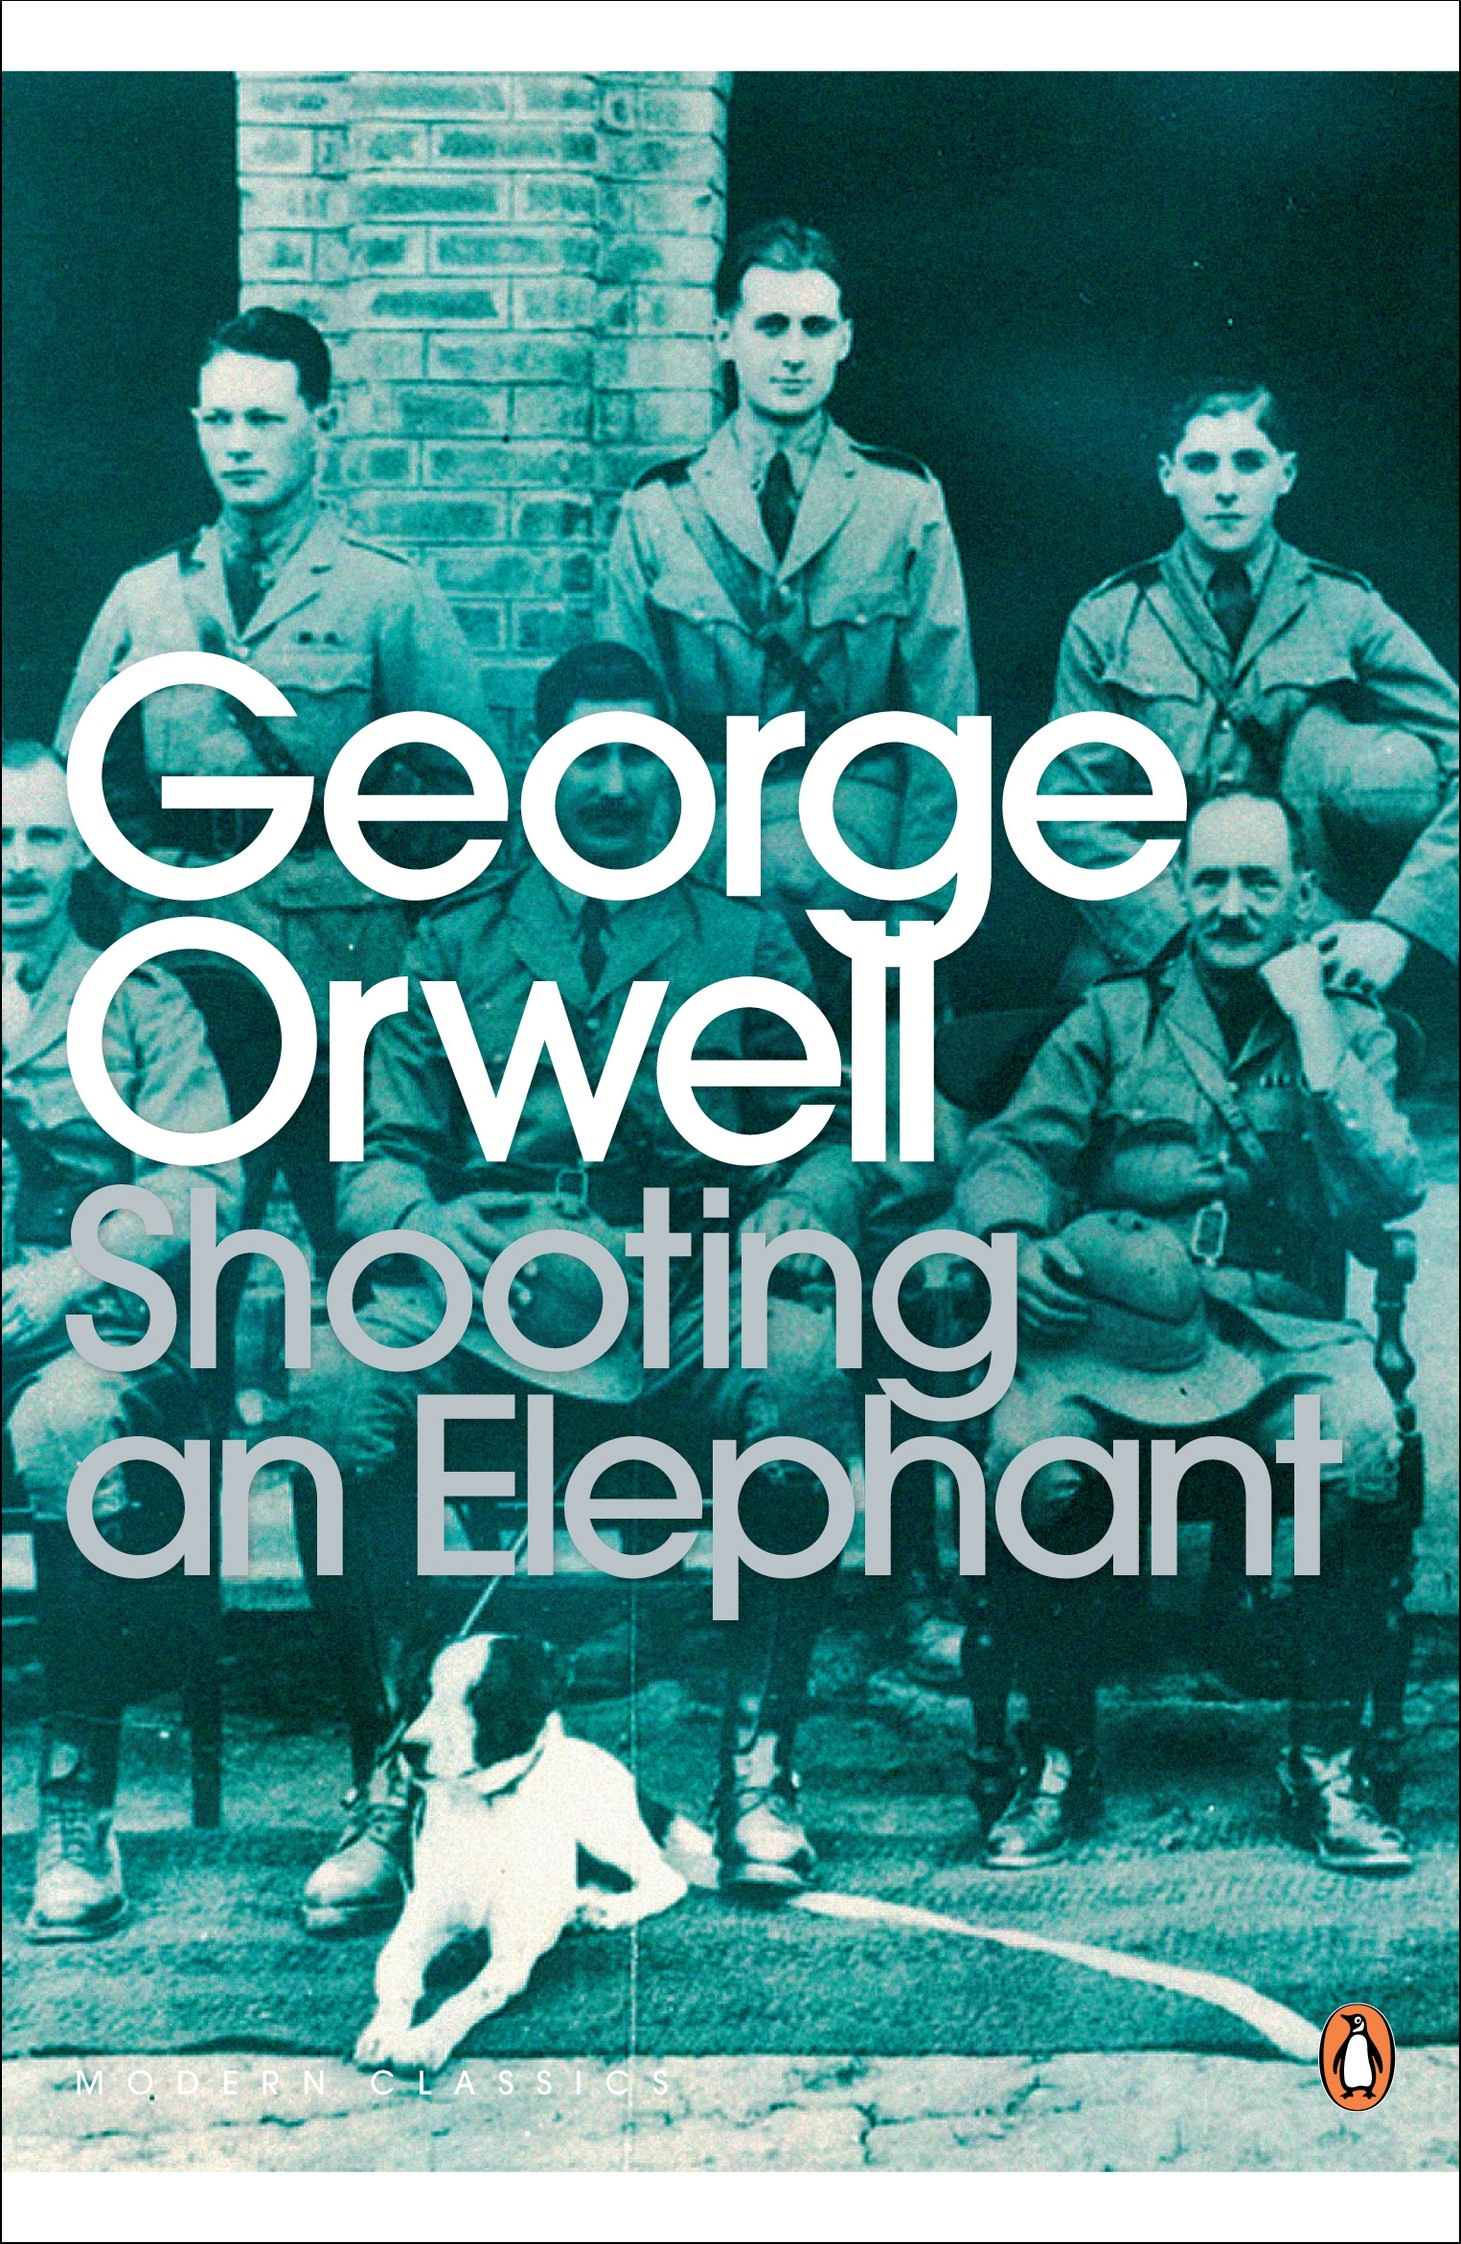 george orwell shooting an elephant essay shooting an elephant shooting an elephant george orwell essay gxart orgreview ldquoshooting an elephantrdquo by george